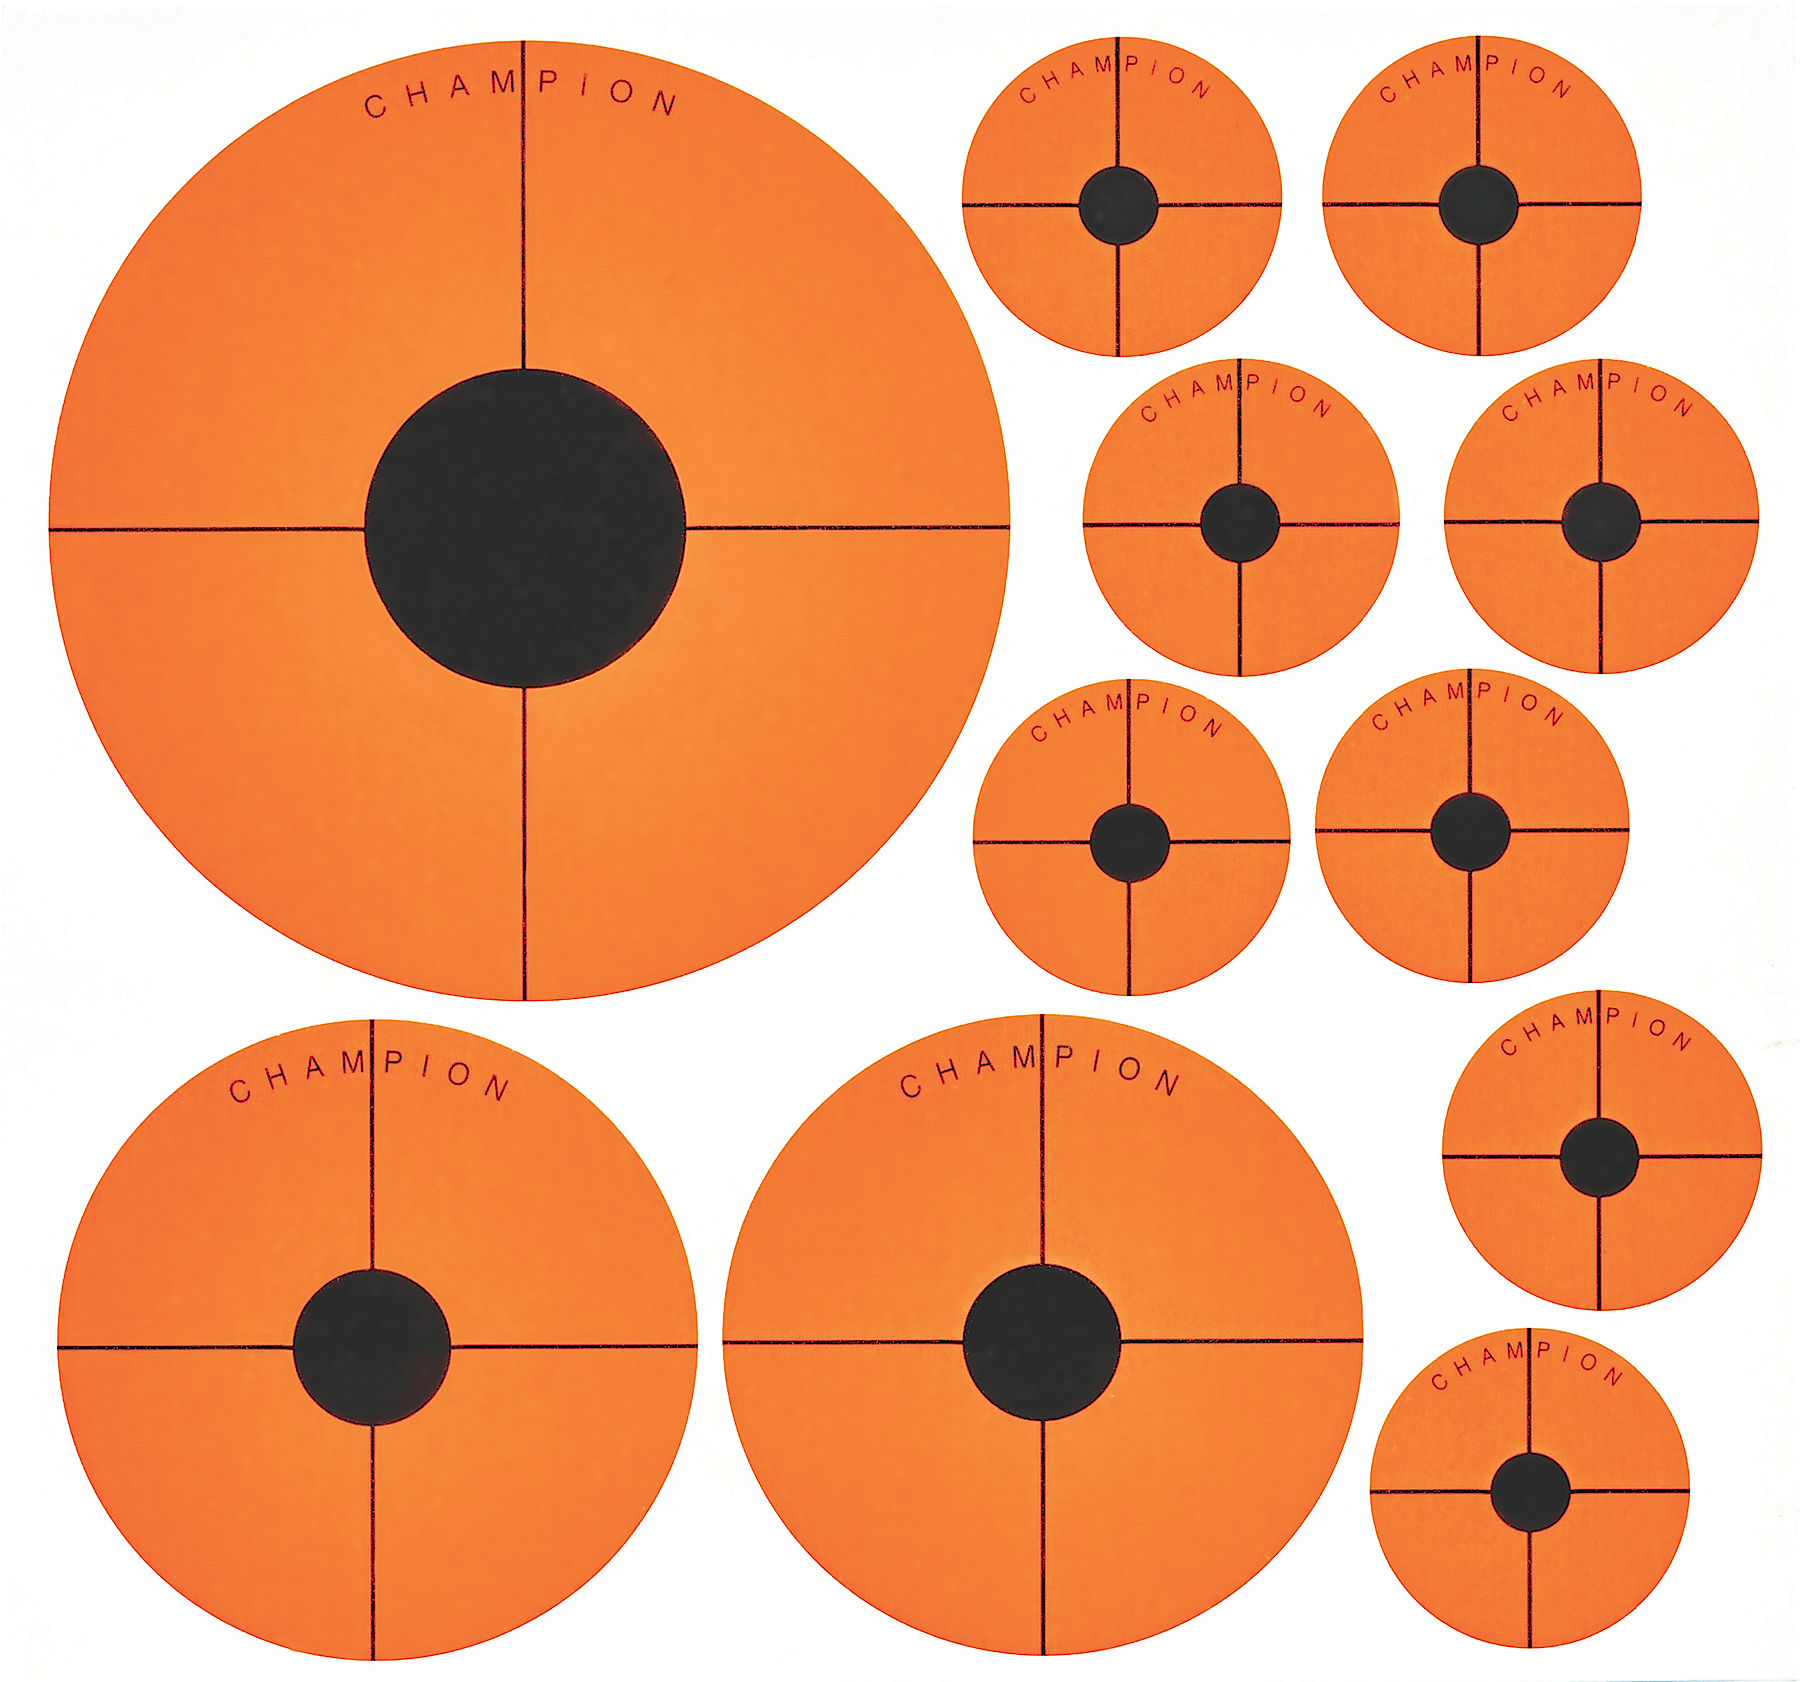 Champion Targets 45771 Instant Adhesive Targets 20 Pack